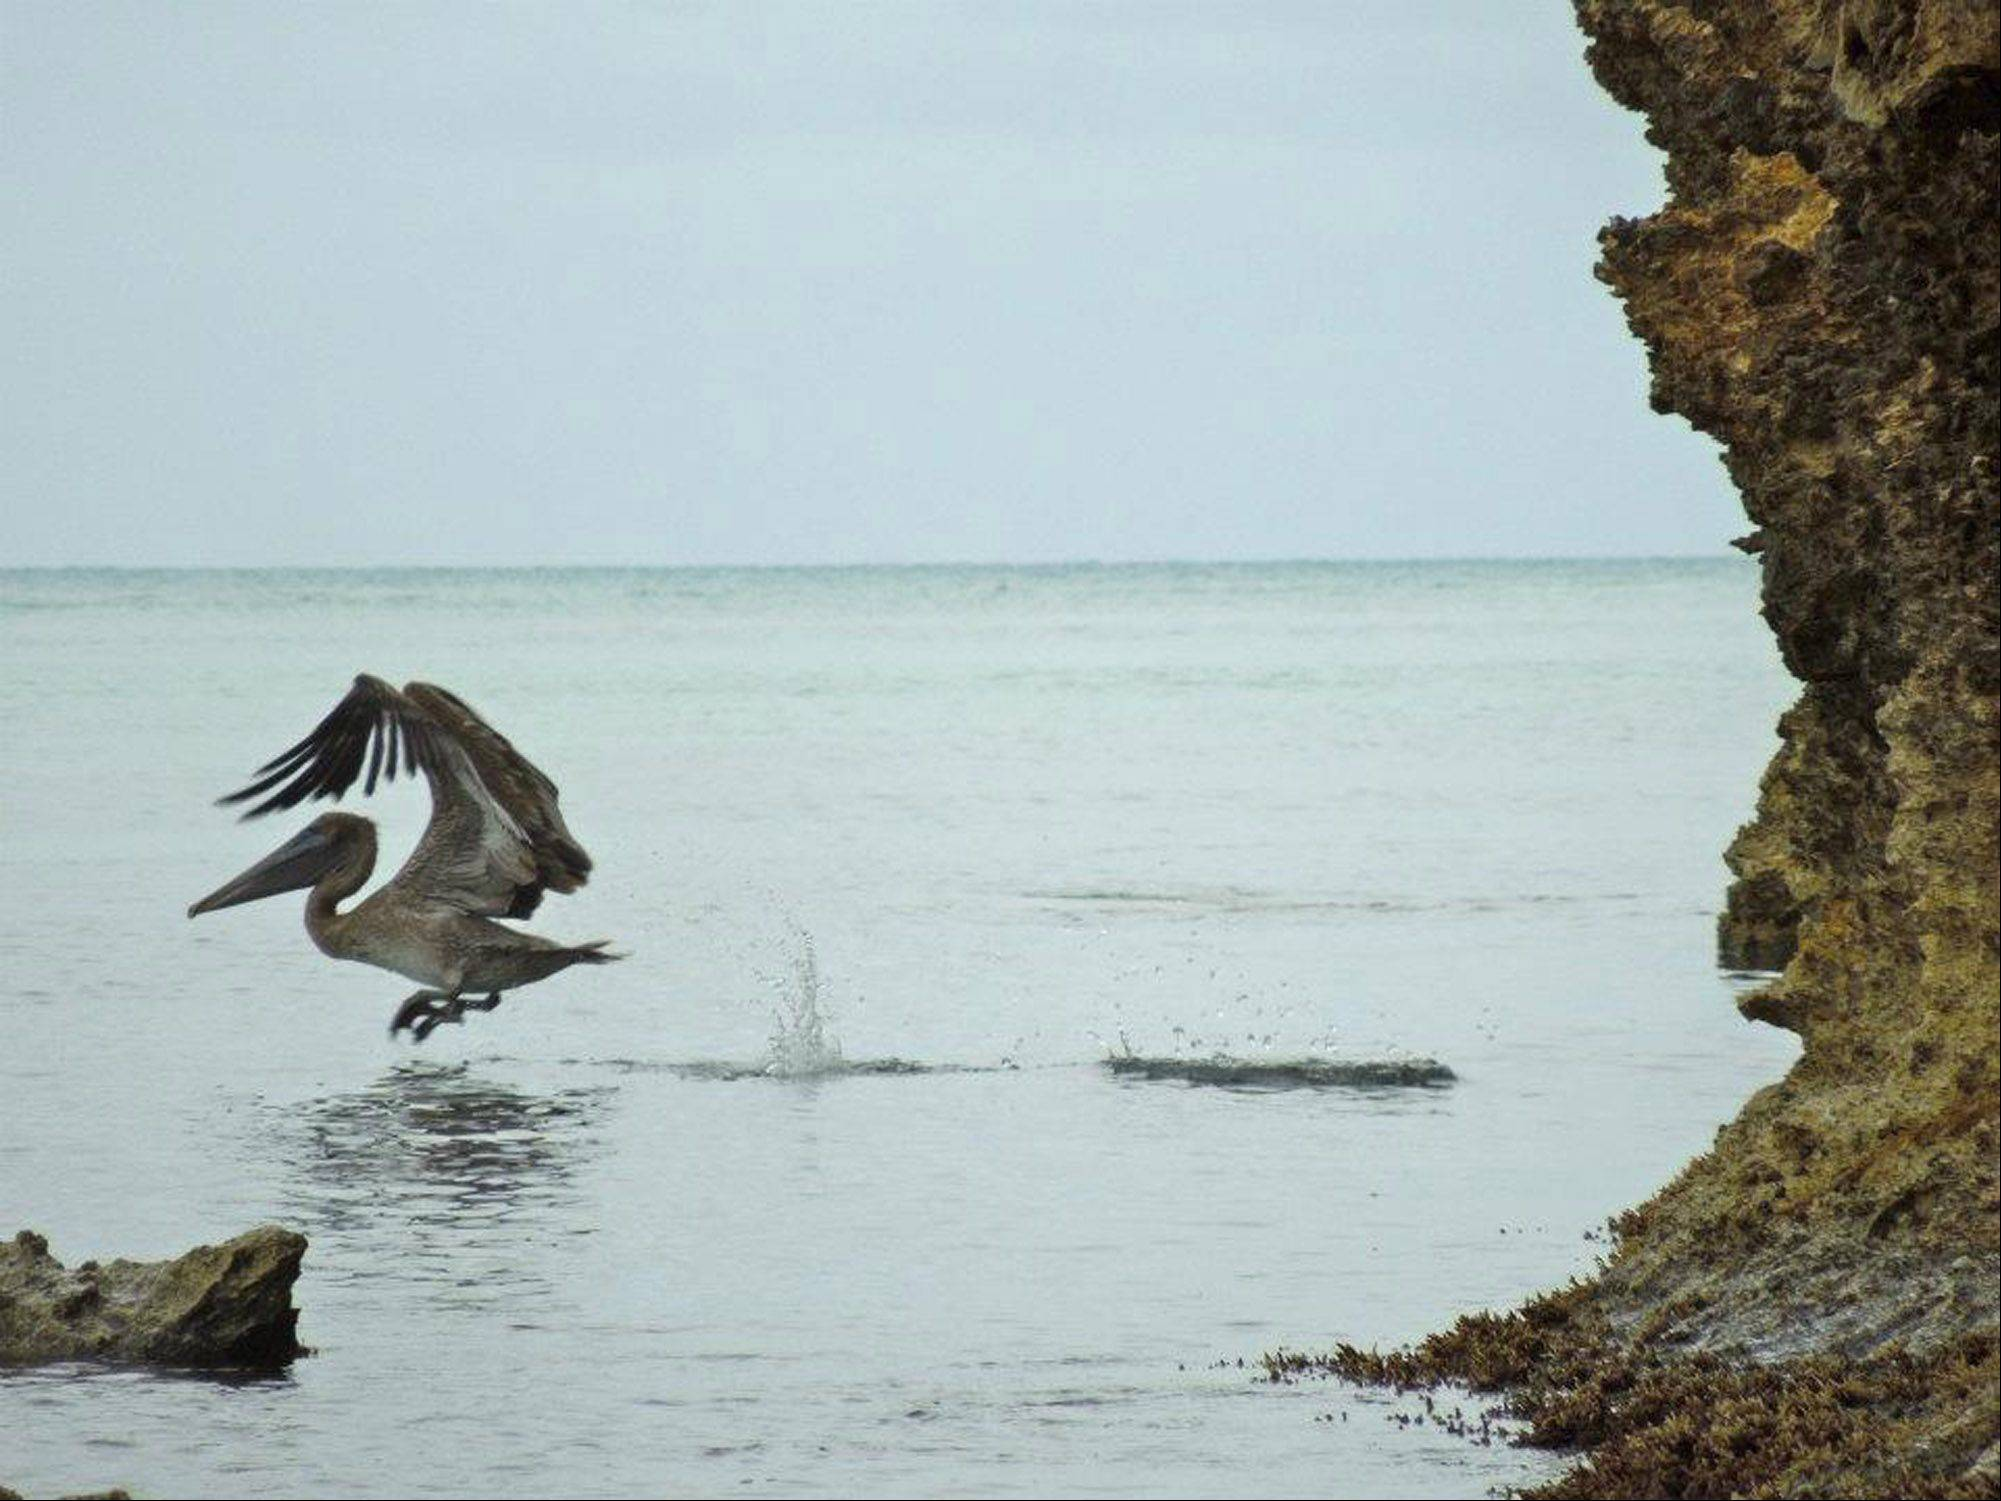 A pelican swoops down to feed on the fish off the beach in the country of Antigua last summer.